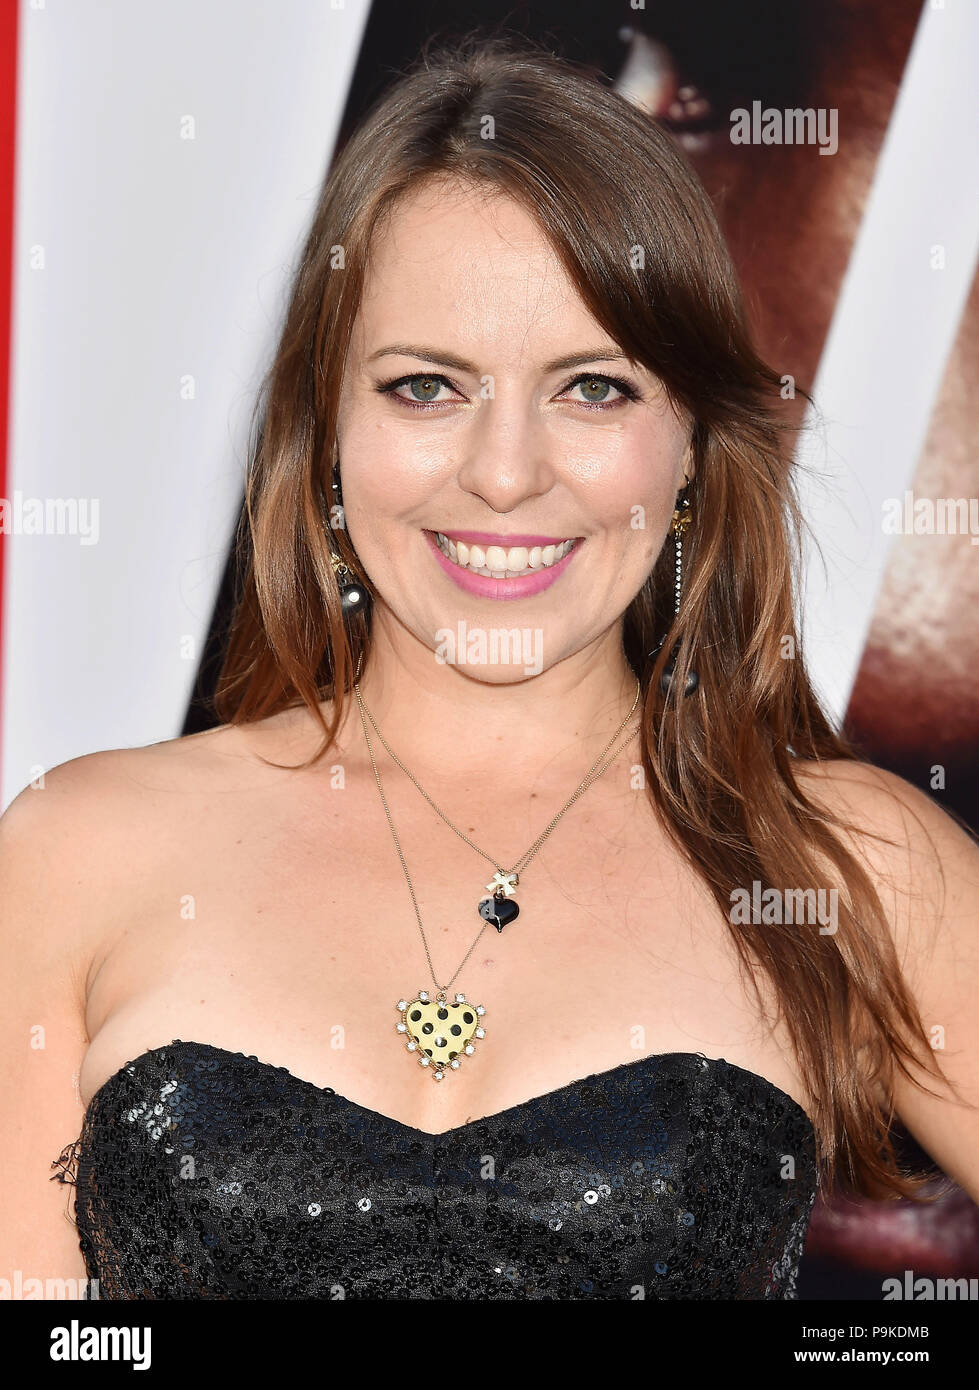 OLGA KAY Russian-American internet celebrity attends the premiere of Columbia Picture's 'Equalizer 2' at TCL Chinese Theatre on July 17, 2018 in Hollywood, California. Photo: Jeffrey Mayer - Stock Image